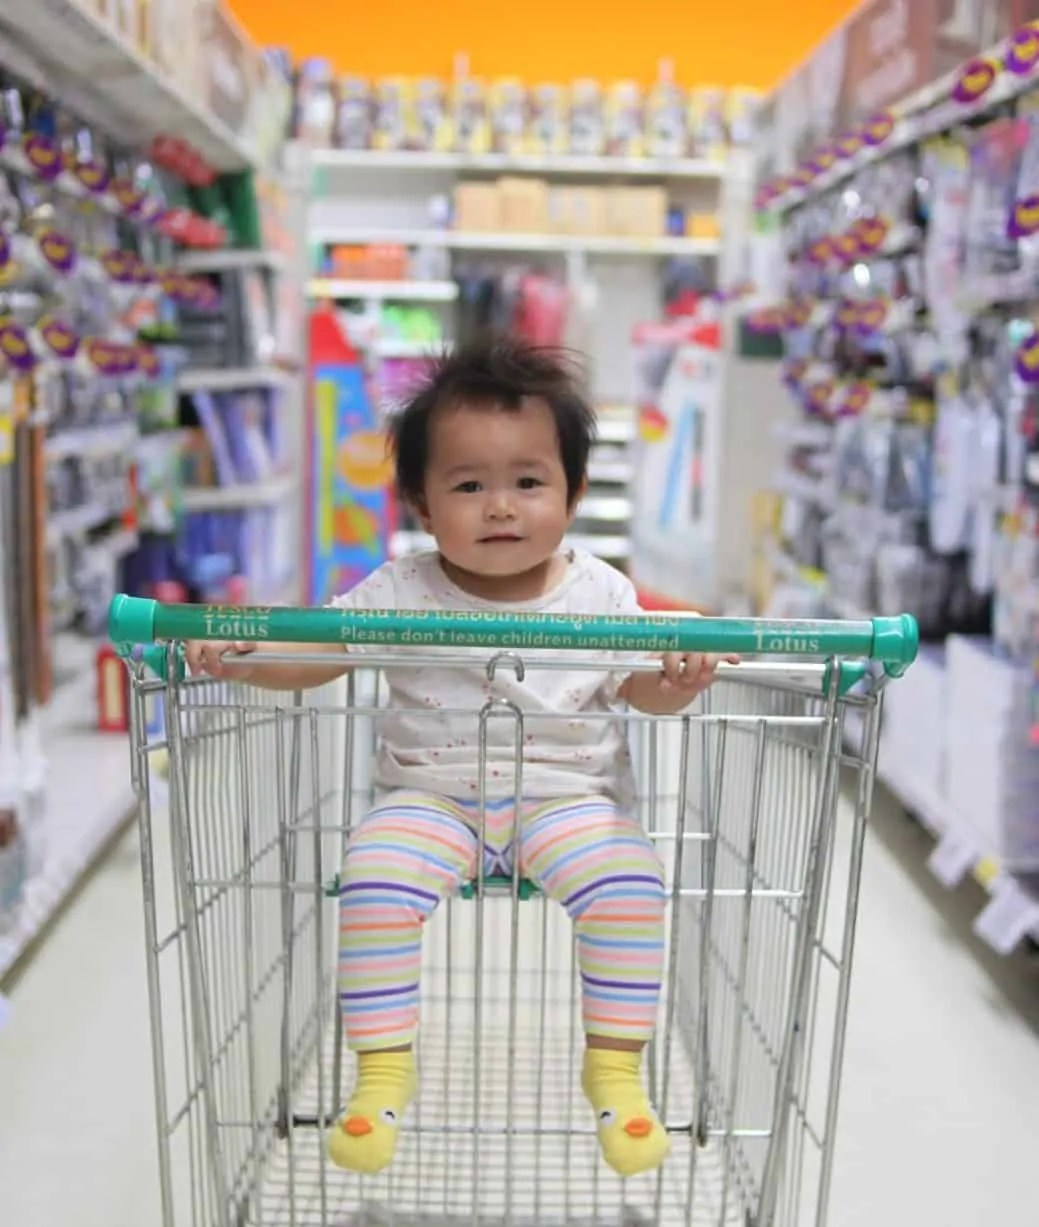 Baby in a shopping cart.